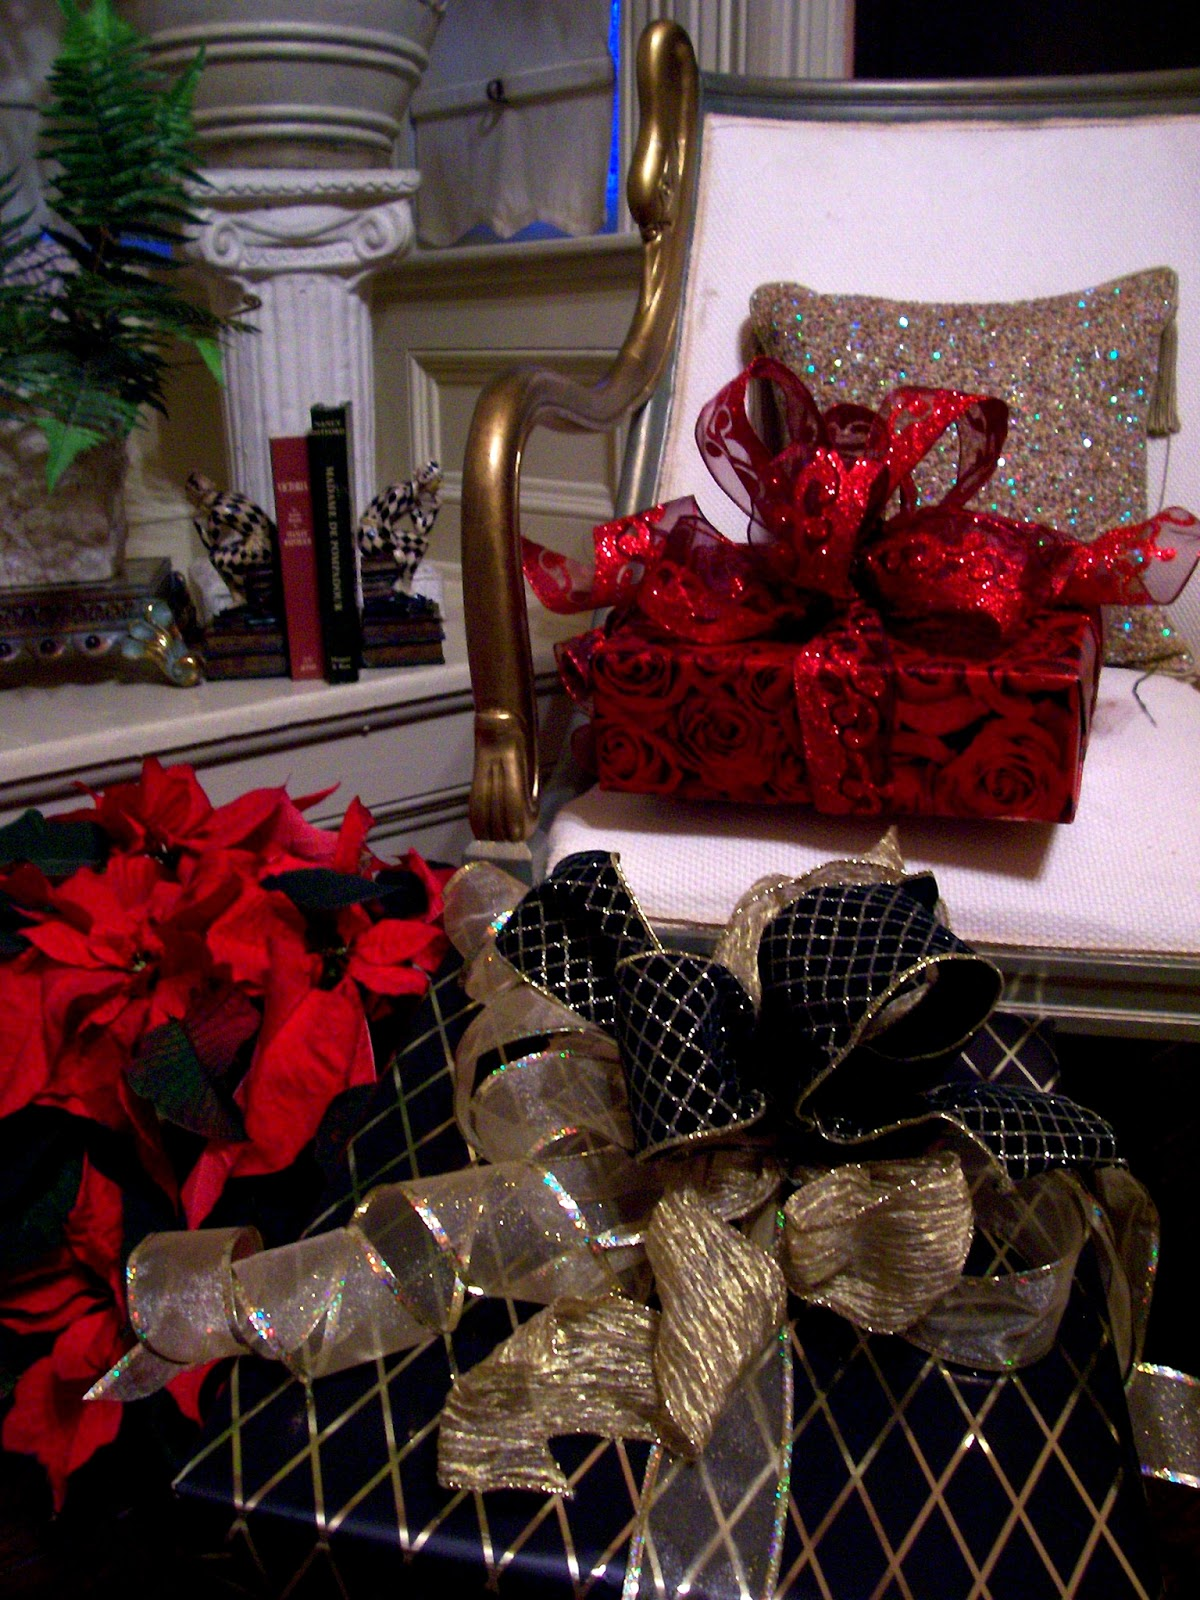 our personal shopping valet and gift presentation services are your solutions to gift giving below are samples of christmas packages that have been wrapped - Christmas Packages